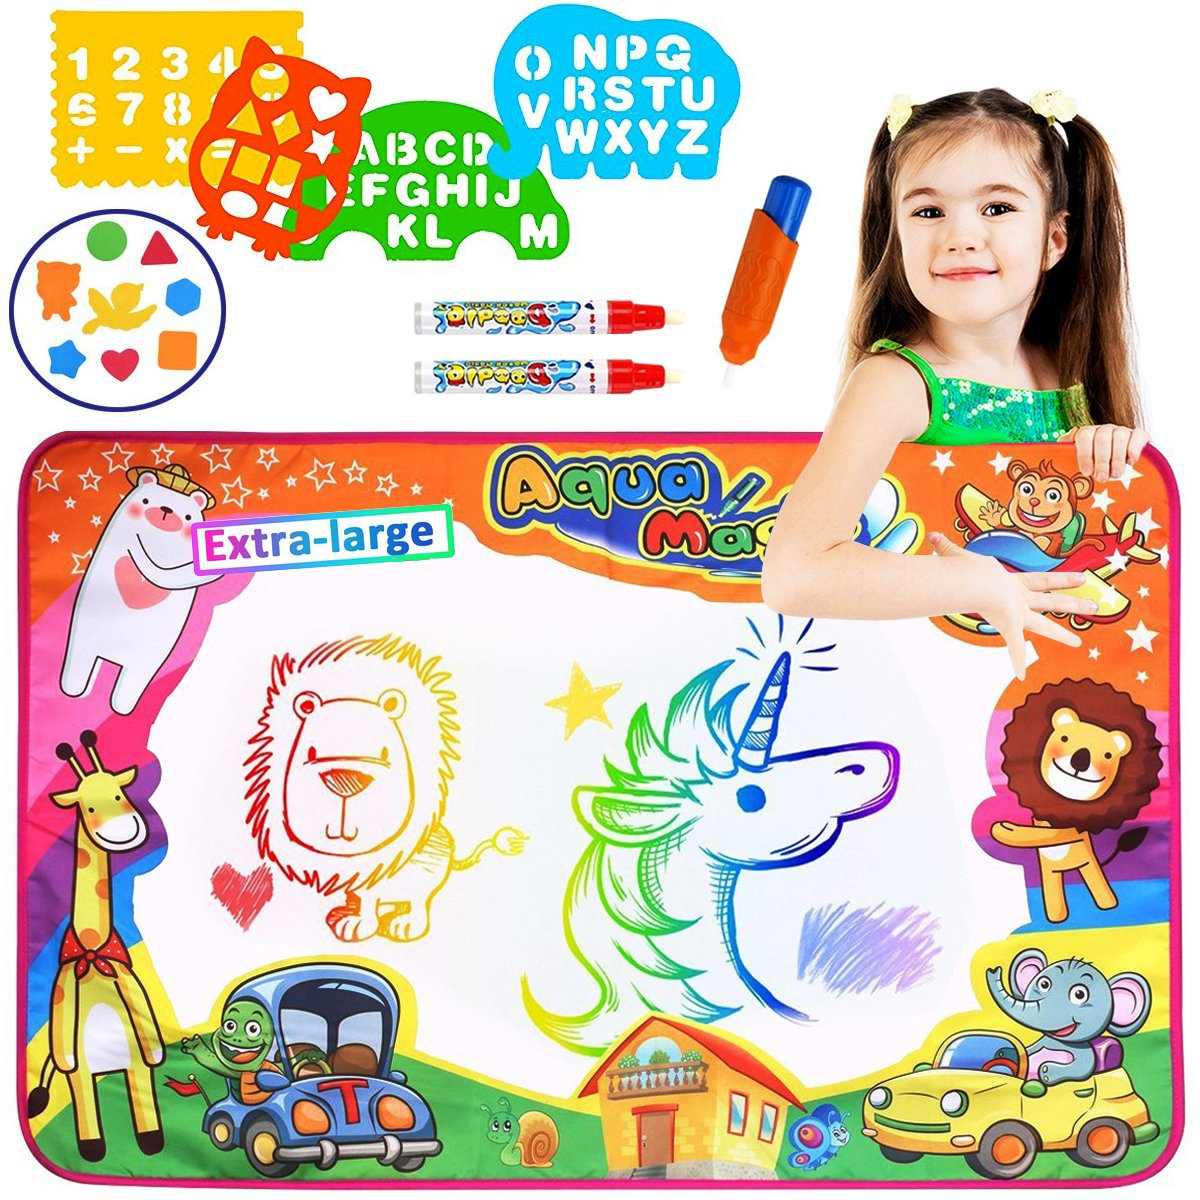 Aitey Aqua Magic Mat, Water Drawing Mat for Toddlers Painting Board with Magic Color Pen, EVA Drawing and Plastic Molds Kids Educational Toys Gift